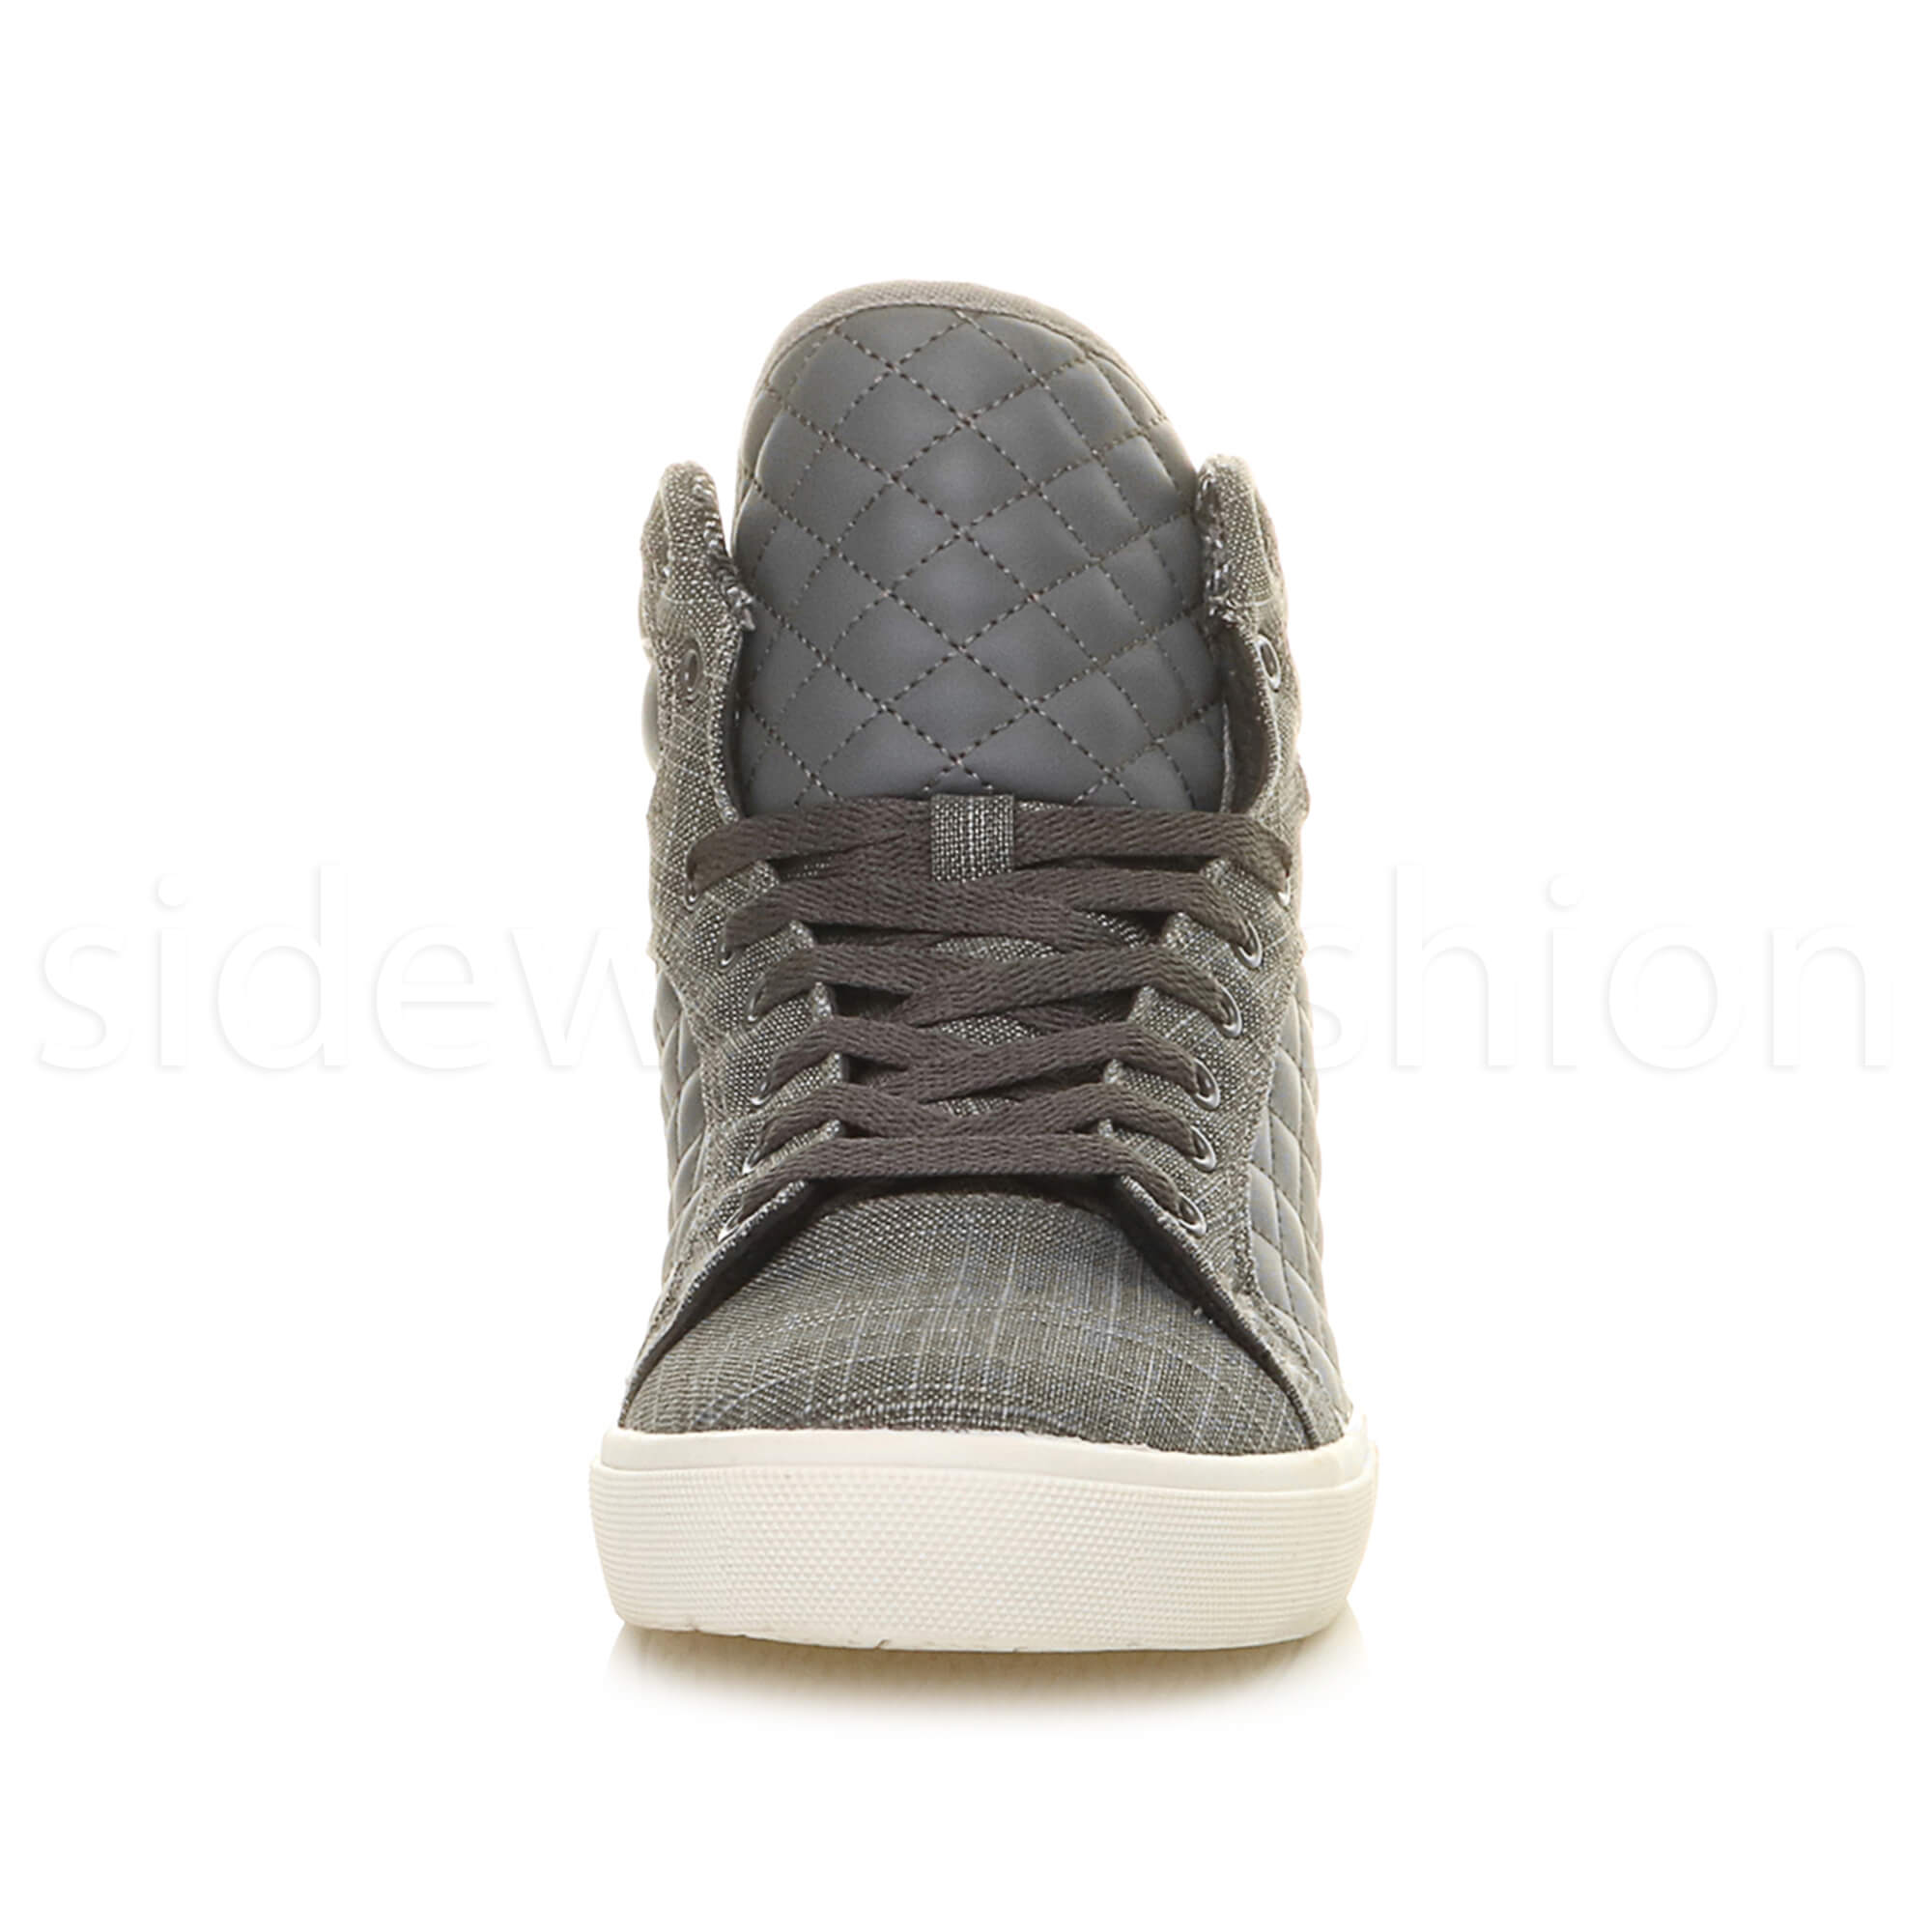 Mens-flat-lace-up-quilted-casual-hi-high-top-ankle-boots-trainers-sneakers-size thumbnail 14